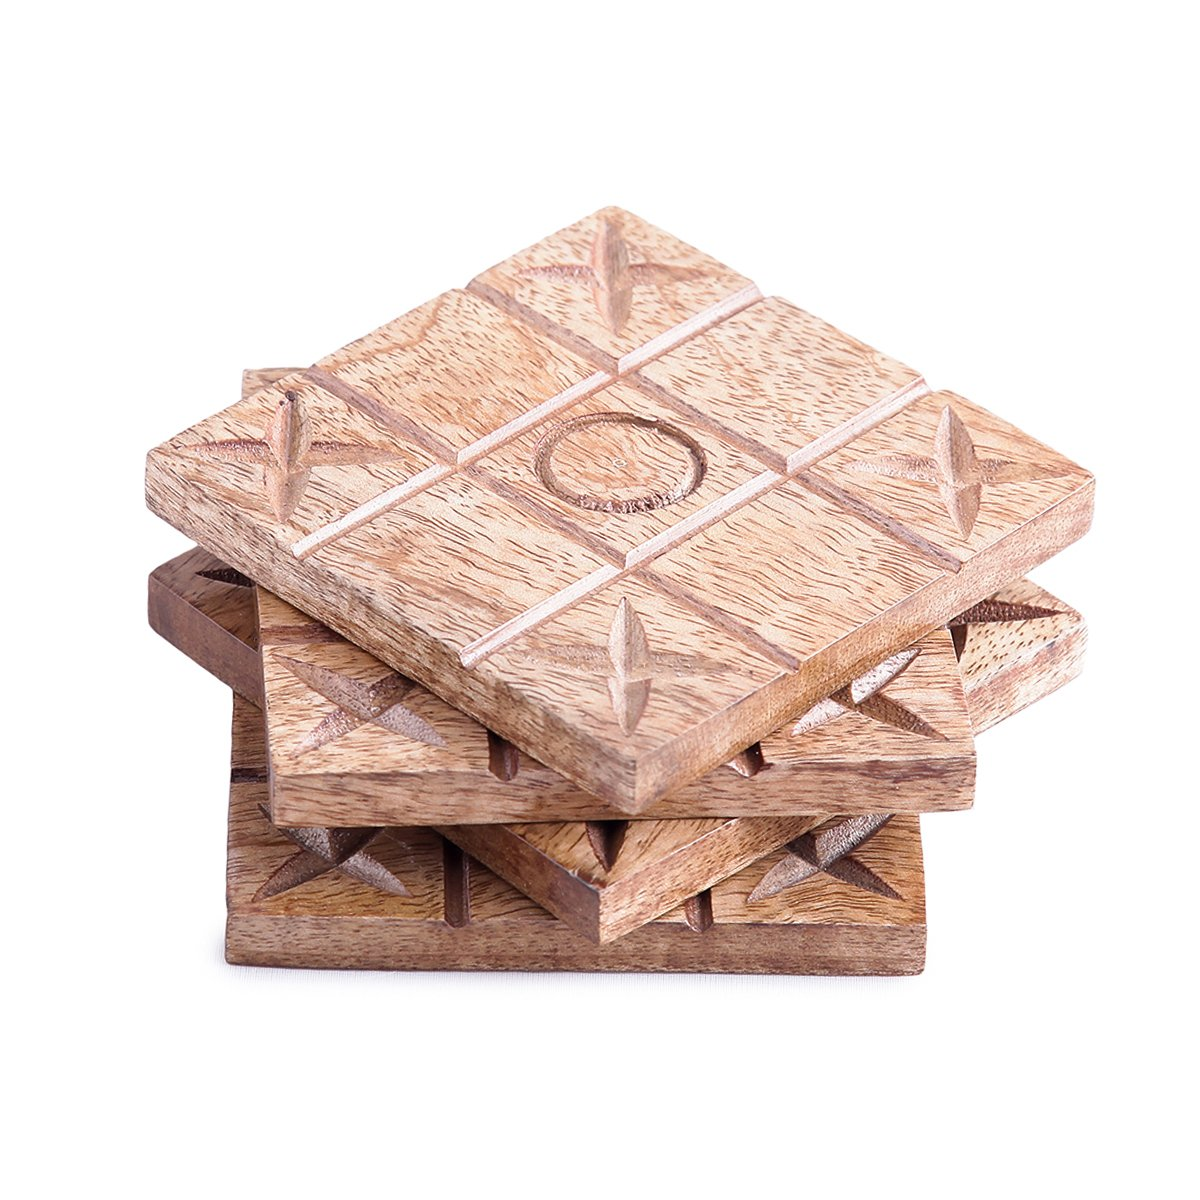 The Royal Collection Handmade Wood Coasters Naughts & Crosses Design Set of 4 With Coaster Holder